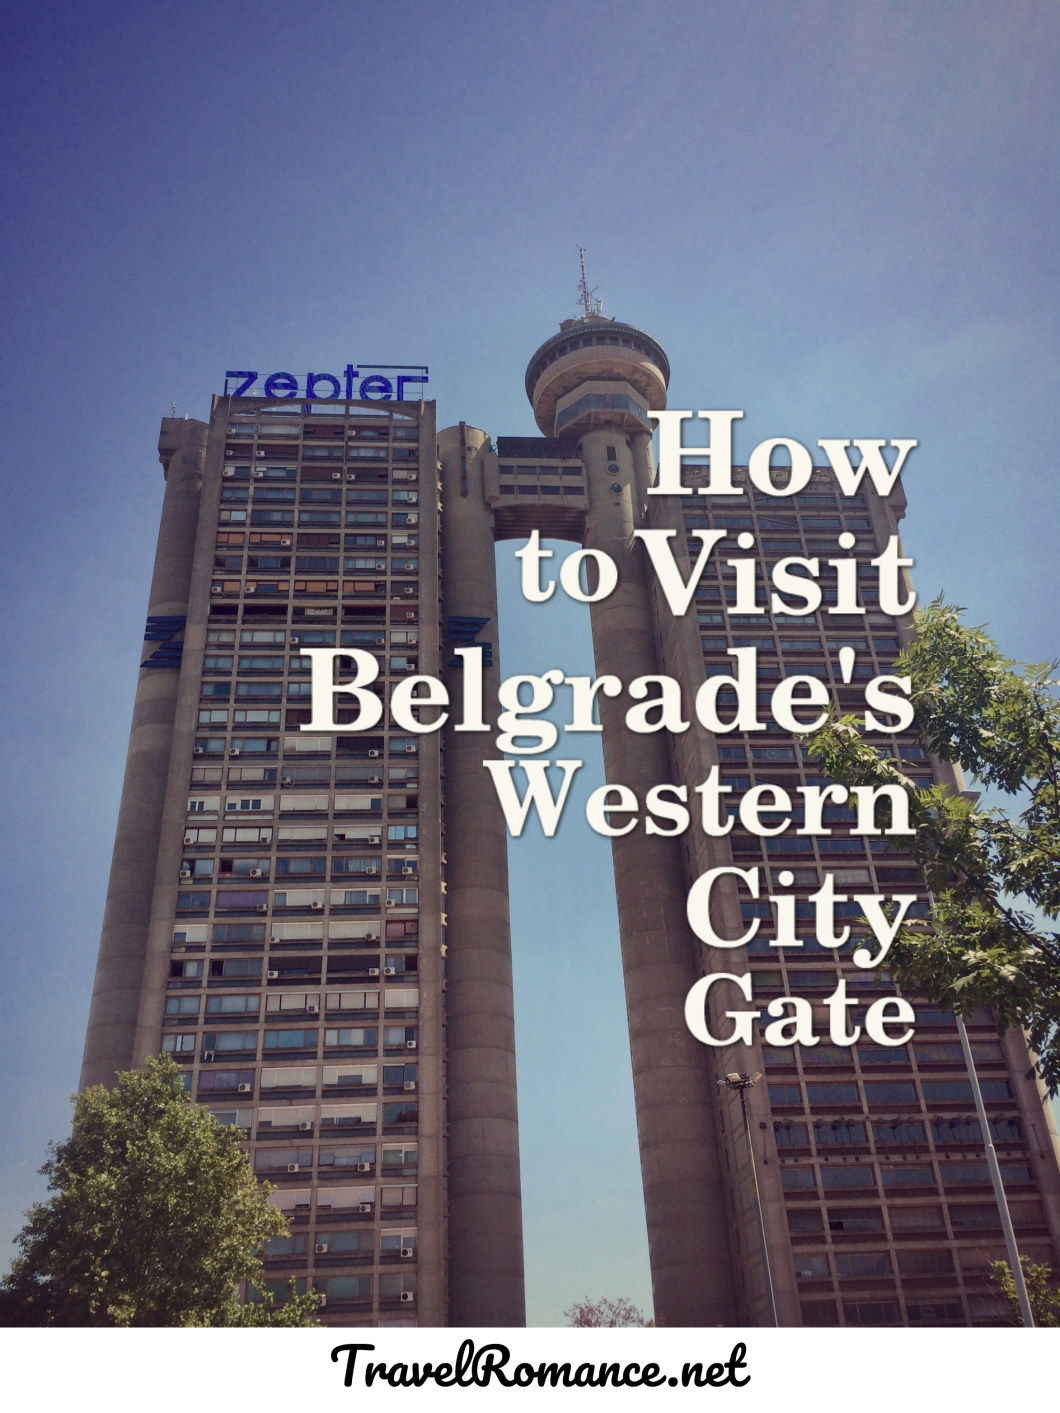 How to Visit Belgrade's Western City Gate